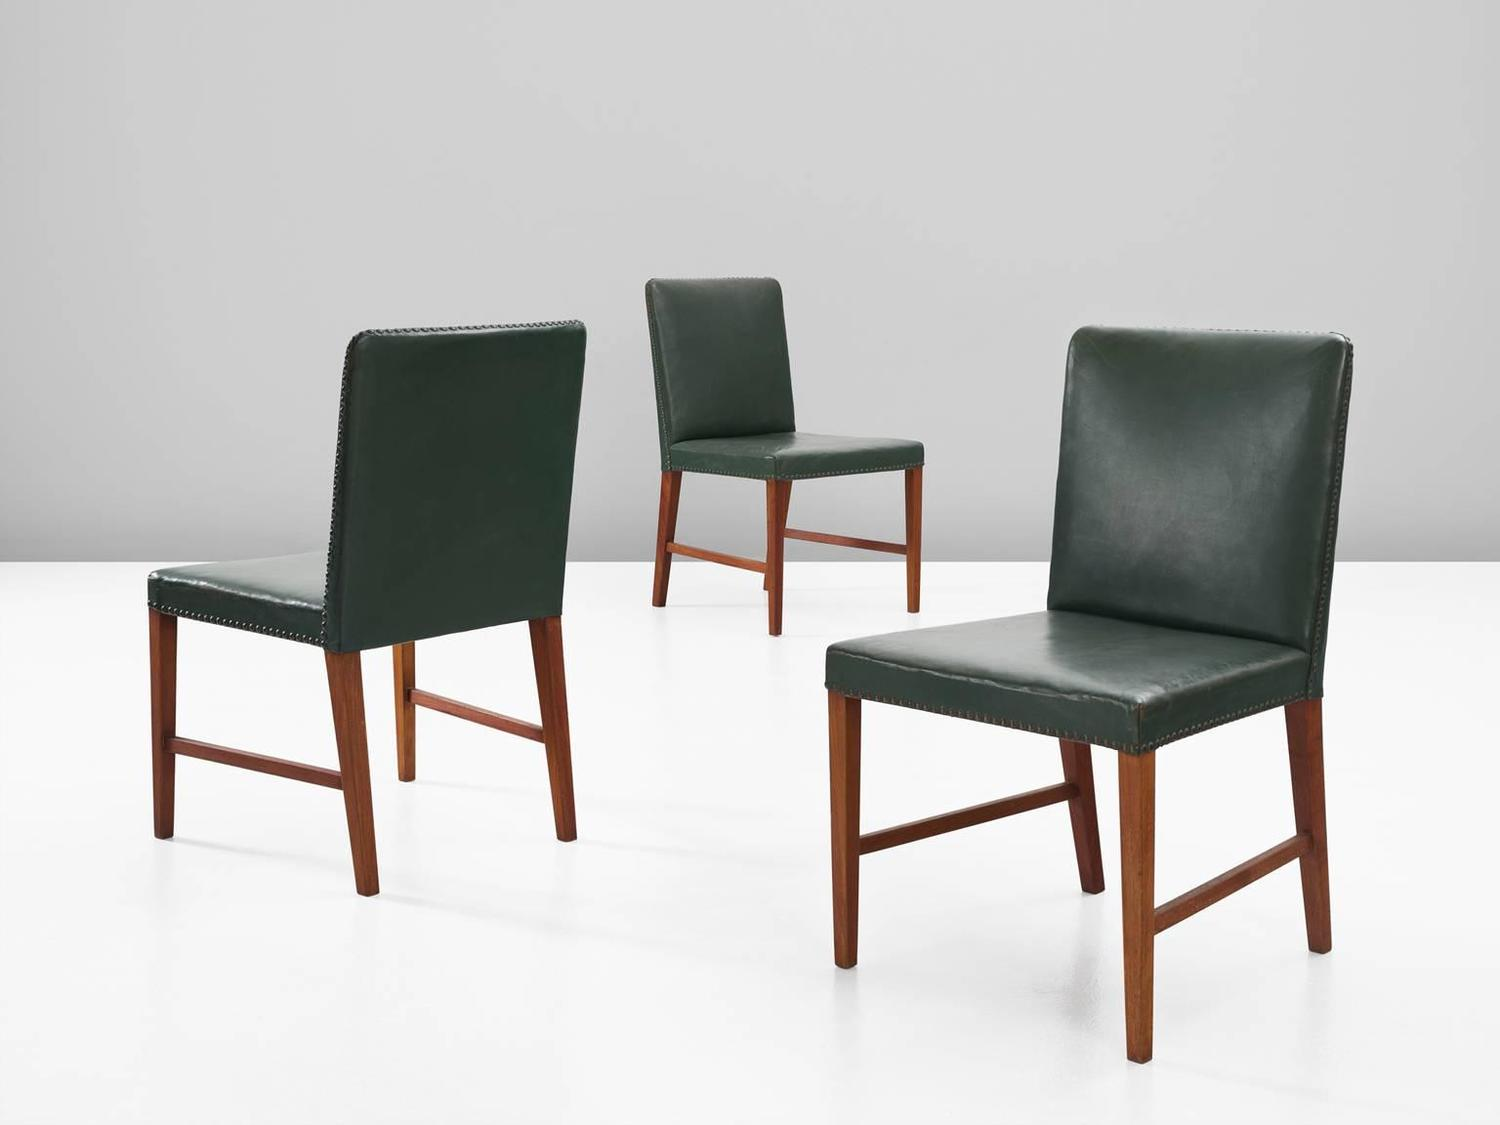 Illum Wikkels Set Of 12 Dining Chairs In Teak And Green